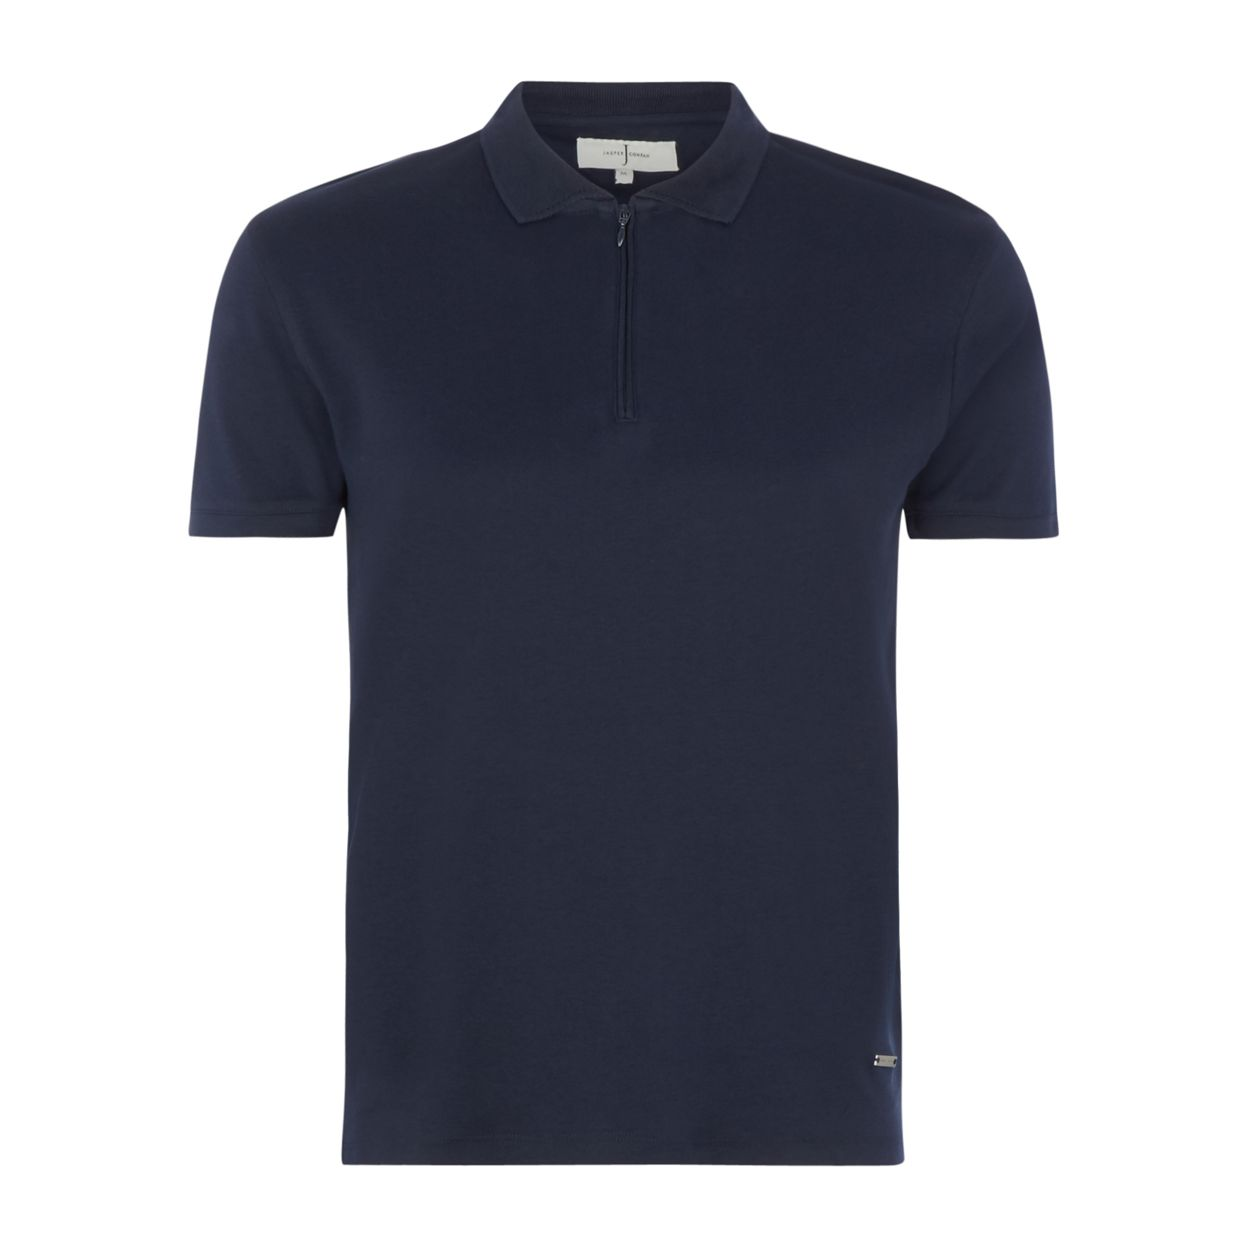 J by Jasper Conran Navy zip polo shirt